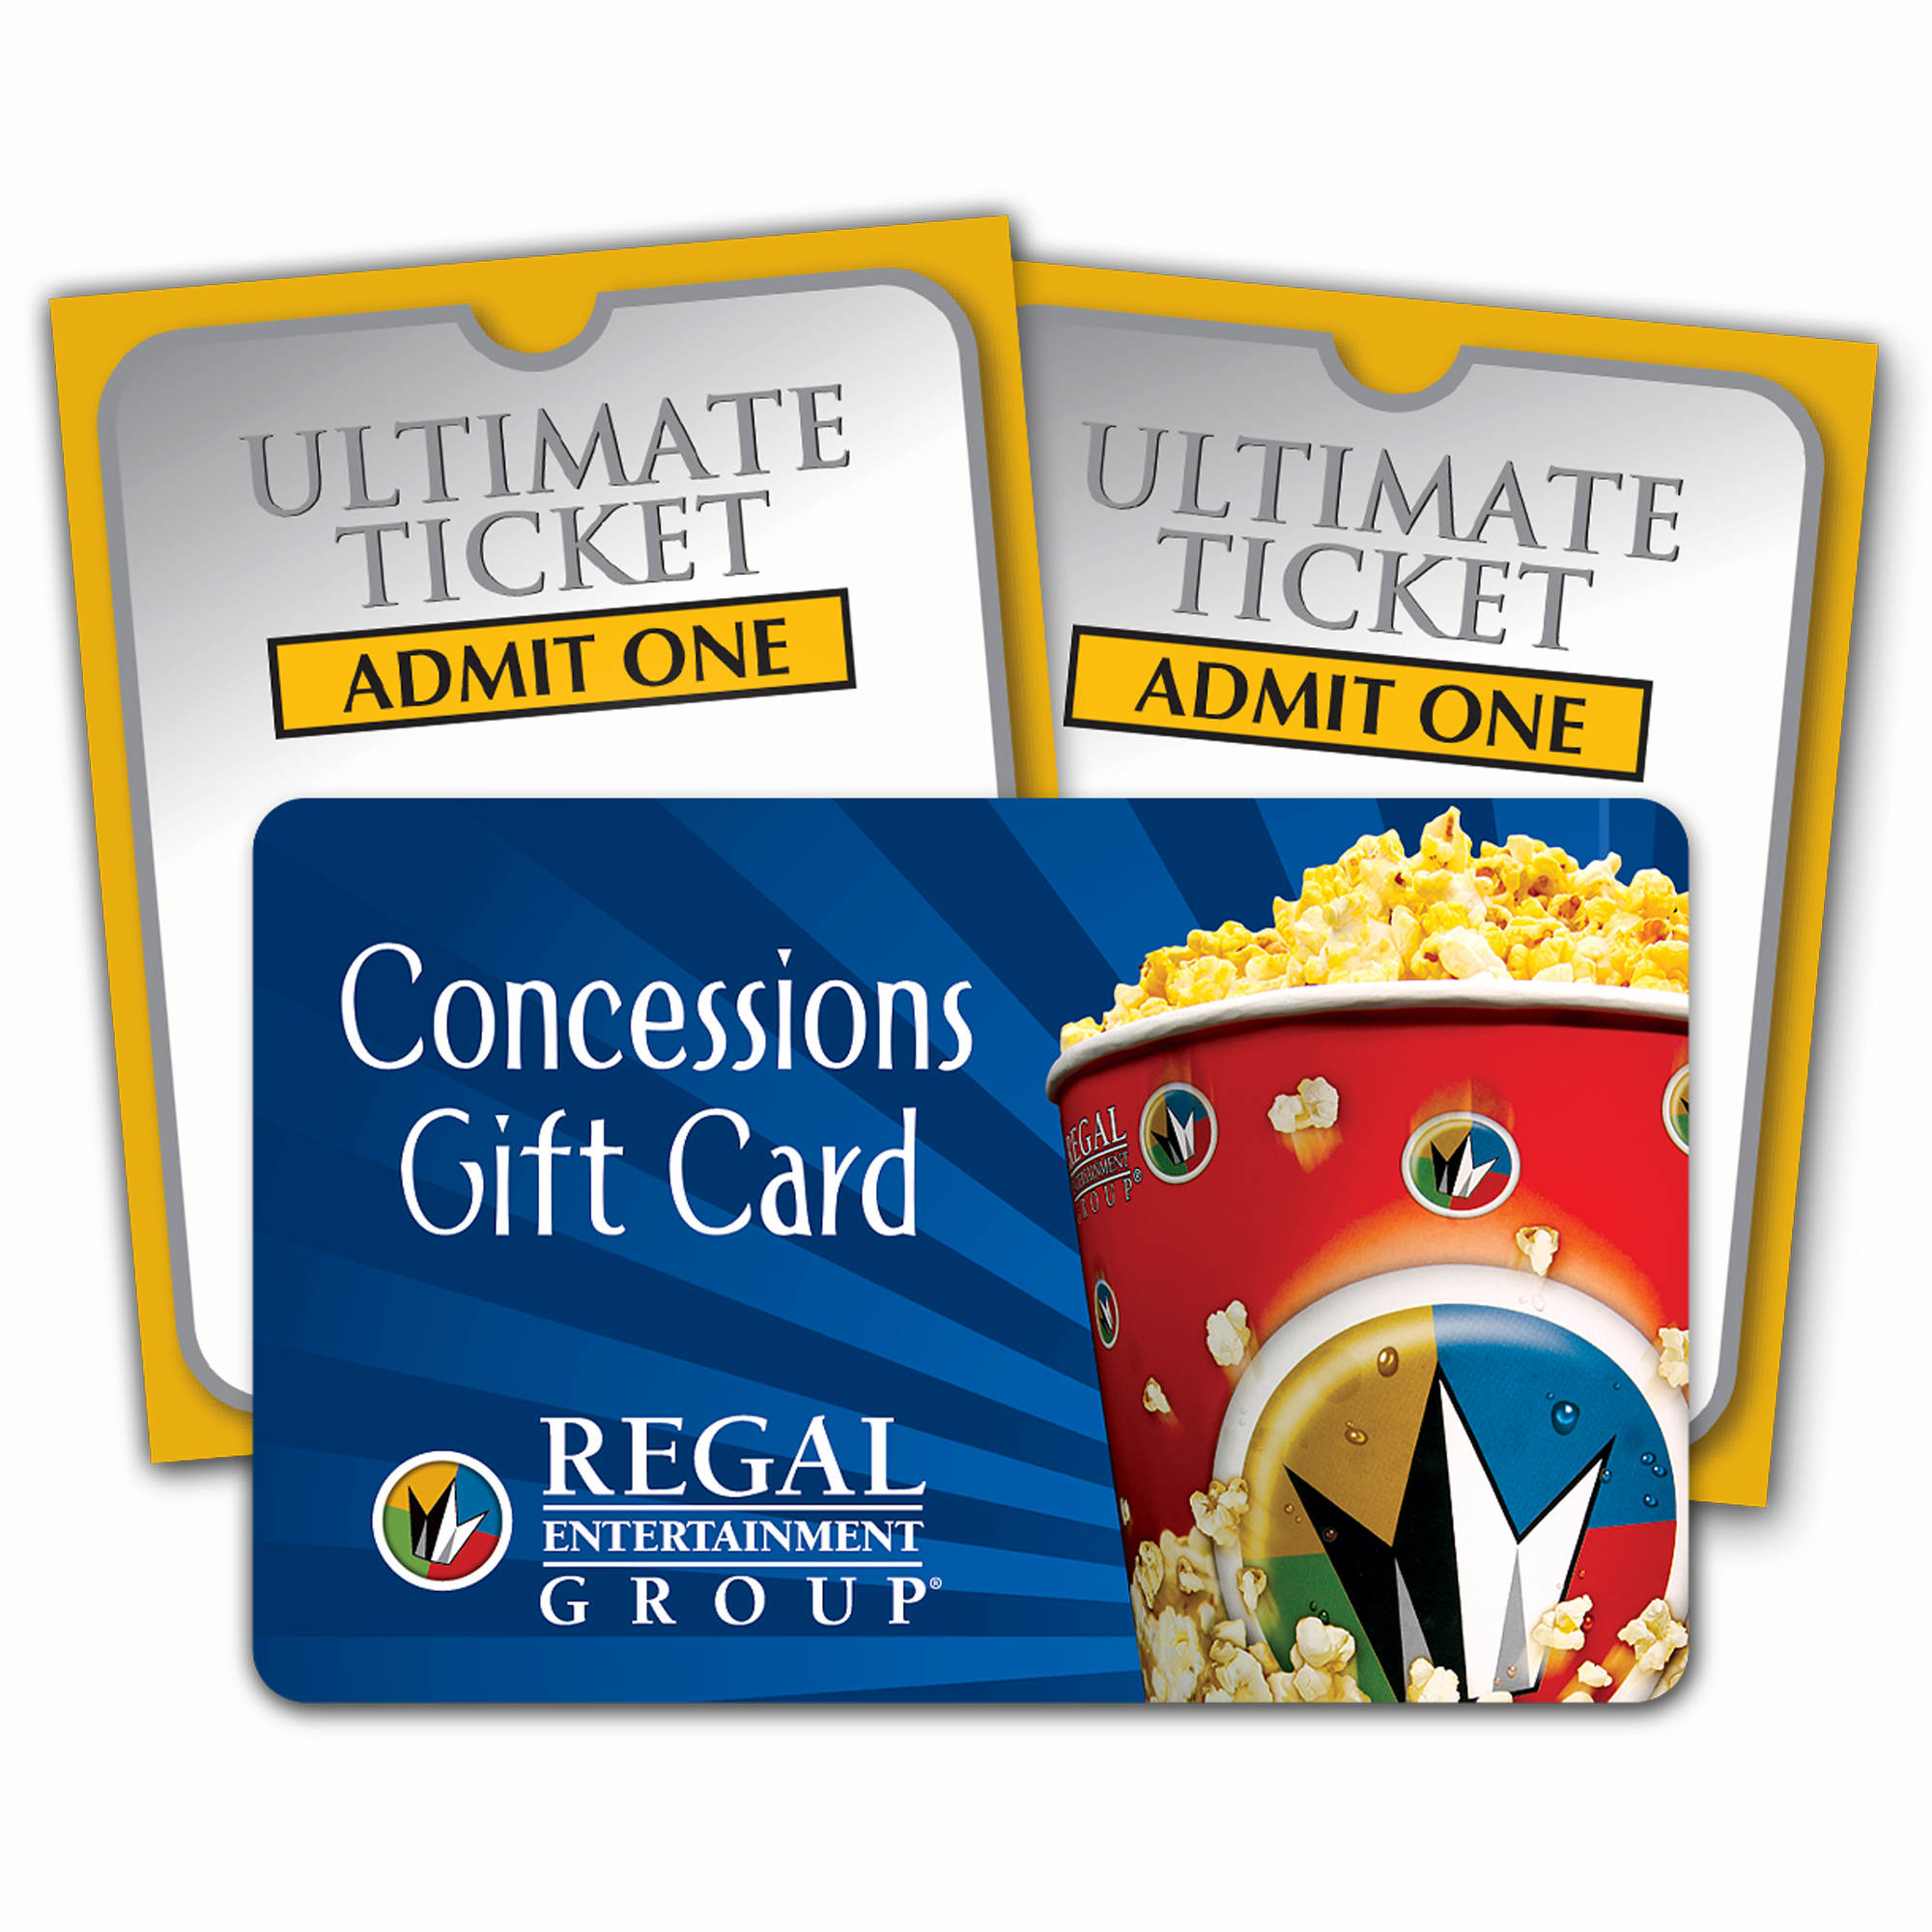 Restricted Regal Premiere Movie Tickets, pack. Delivery Restrictions Apply: Tickets will only be shipped to and are only valid for use in the following States: California, New York, New Jersey, Pennsylvania, Maryland, Virginia, Washington DC, No Expiration.